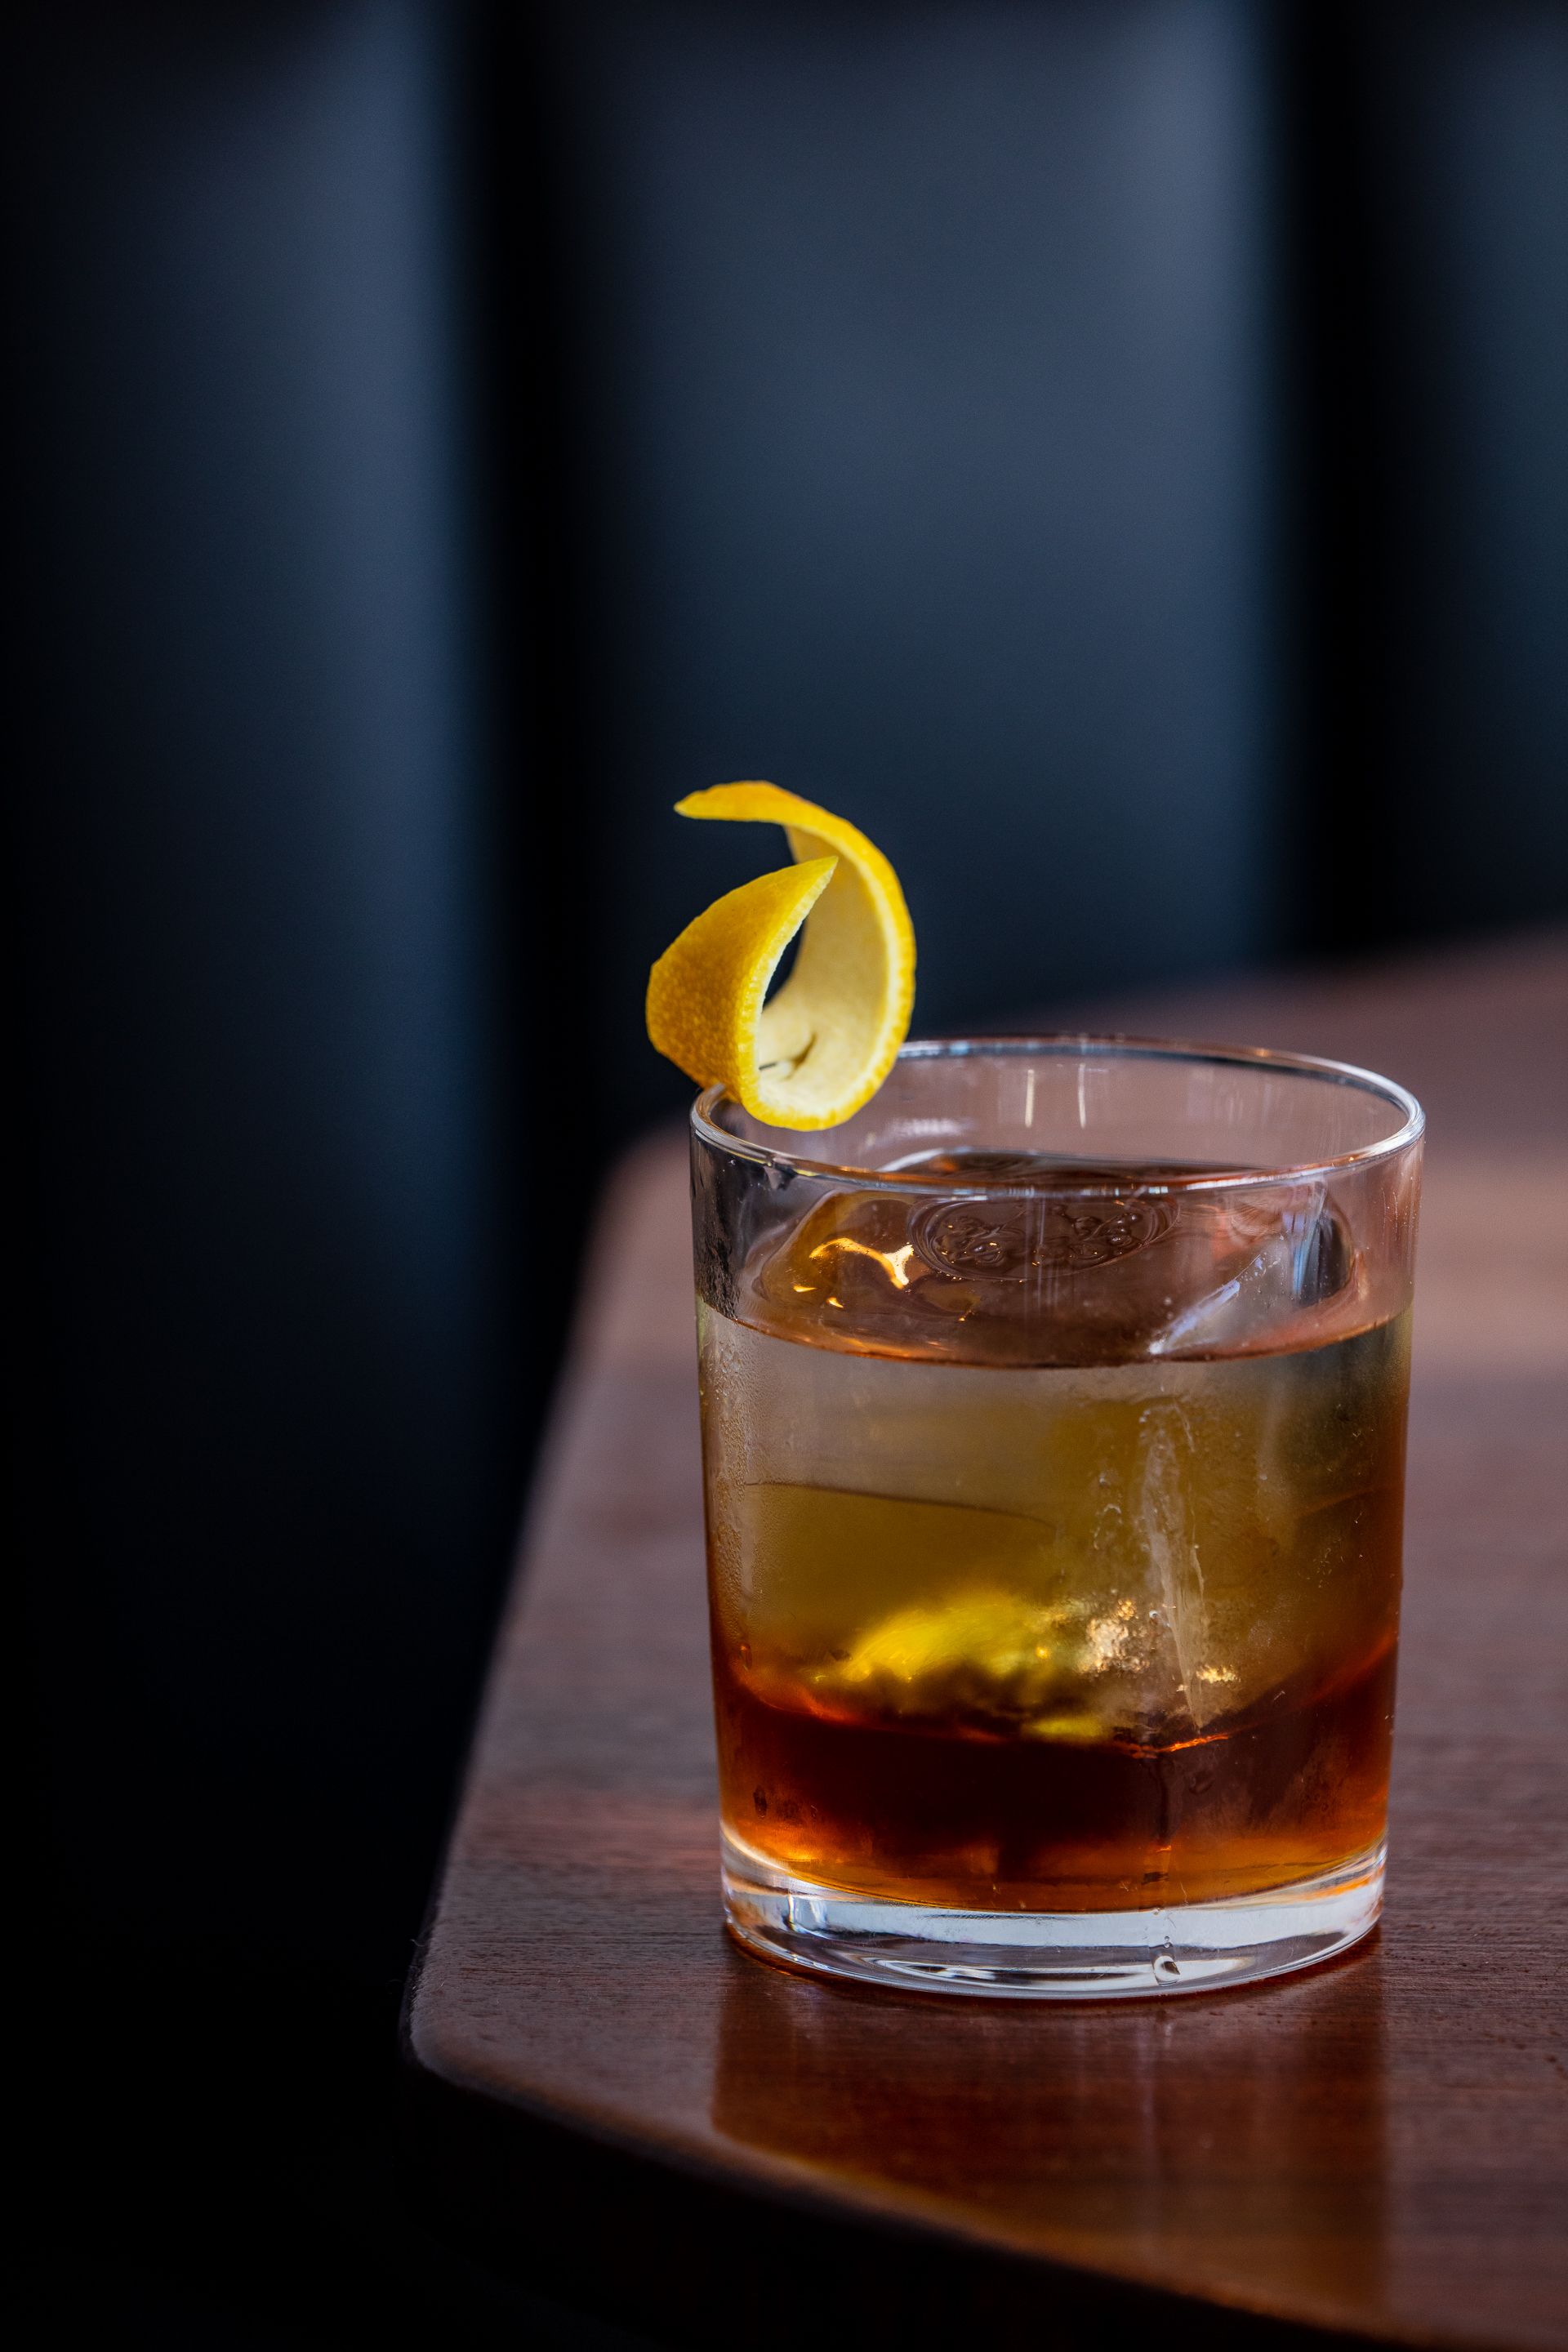 CLASSICALLY ROOTED - SPIRIT & TECHNIQUE DRIVEN -CONSTANTLY CHANGING - JOIN US FOR HAPPY HOUR EVERYDAY FROM 2:30 PM UNTIL 6:30 PM IN OUR BAR & LOUNGE AREASEATING IS FIRST COME, FIRST SERVED.